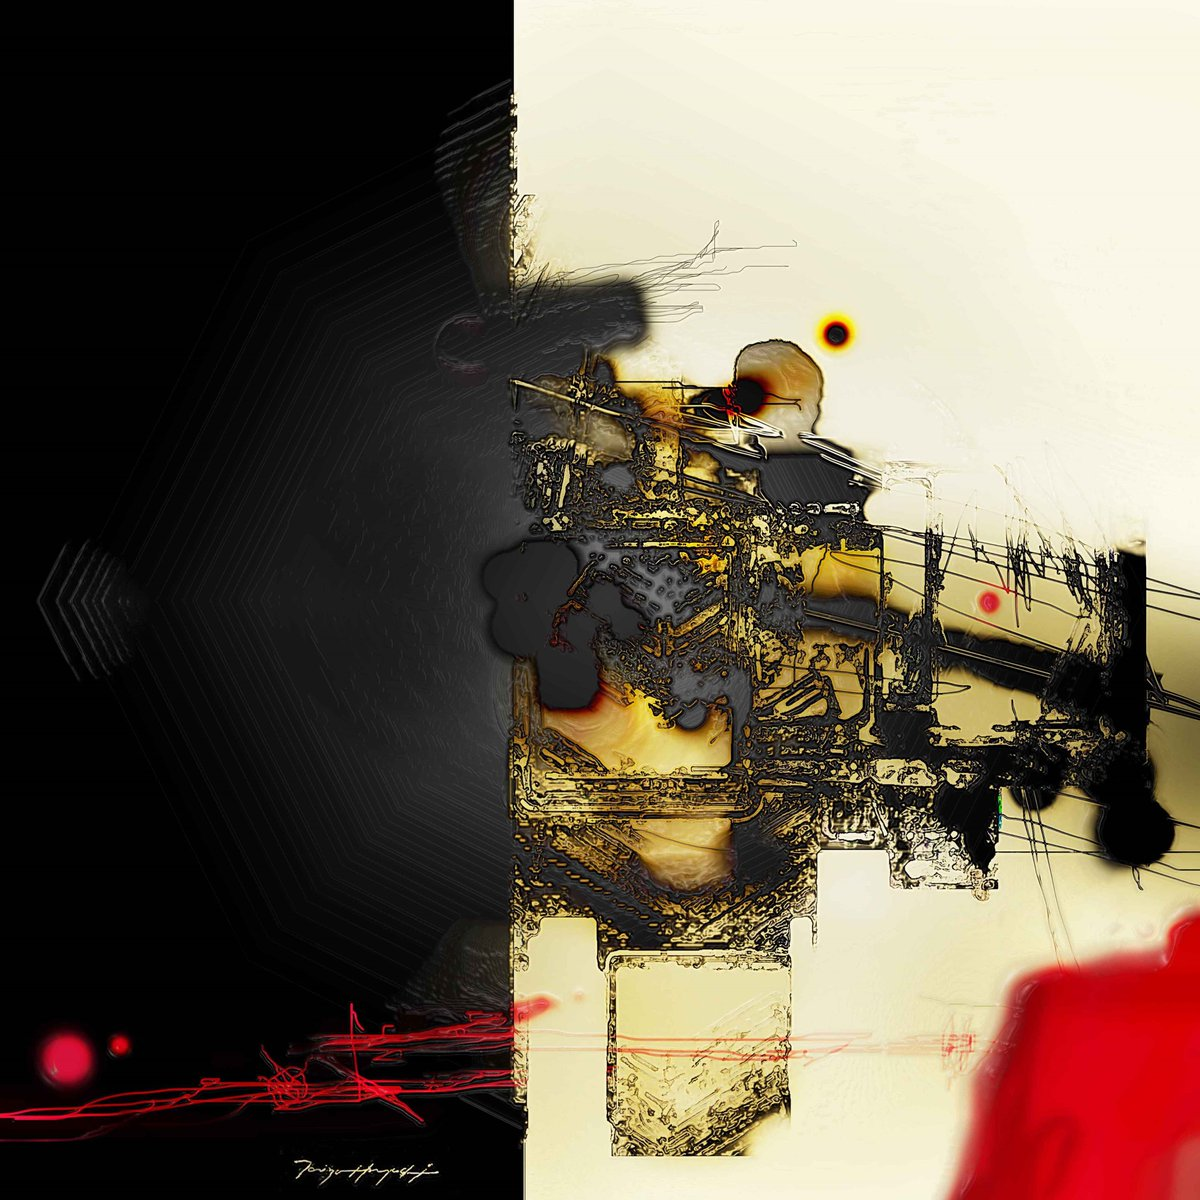 &quot; Opaue Black #001 &quot;  Art works by Taizo Hayashi ; japan #abstractpainting #art #contemporaryart  #black #red #絵描きさんと繋がりたい #抽象画<br>http://pic.twitter.com/Cuk3tGtXC4